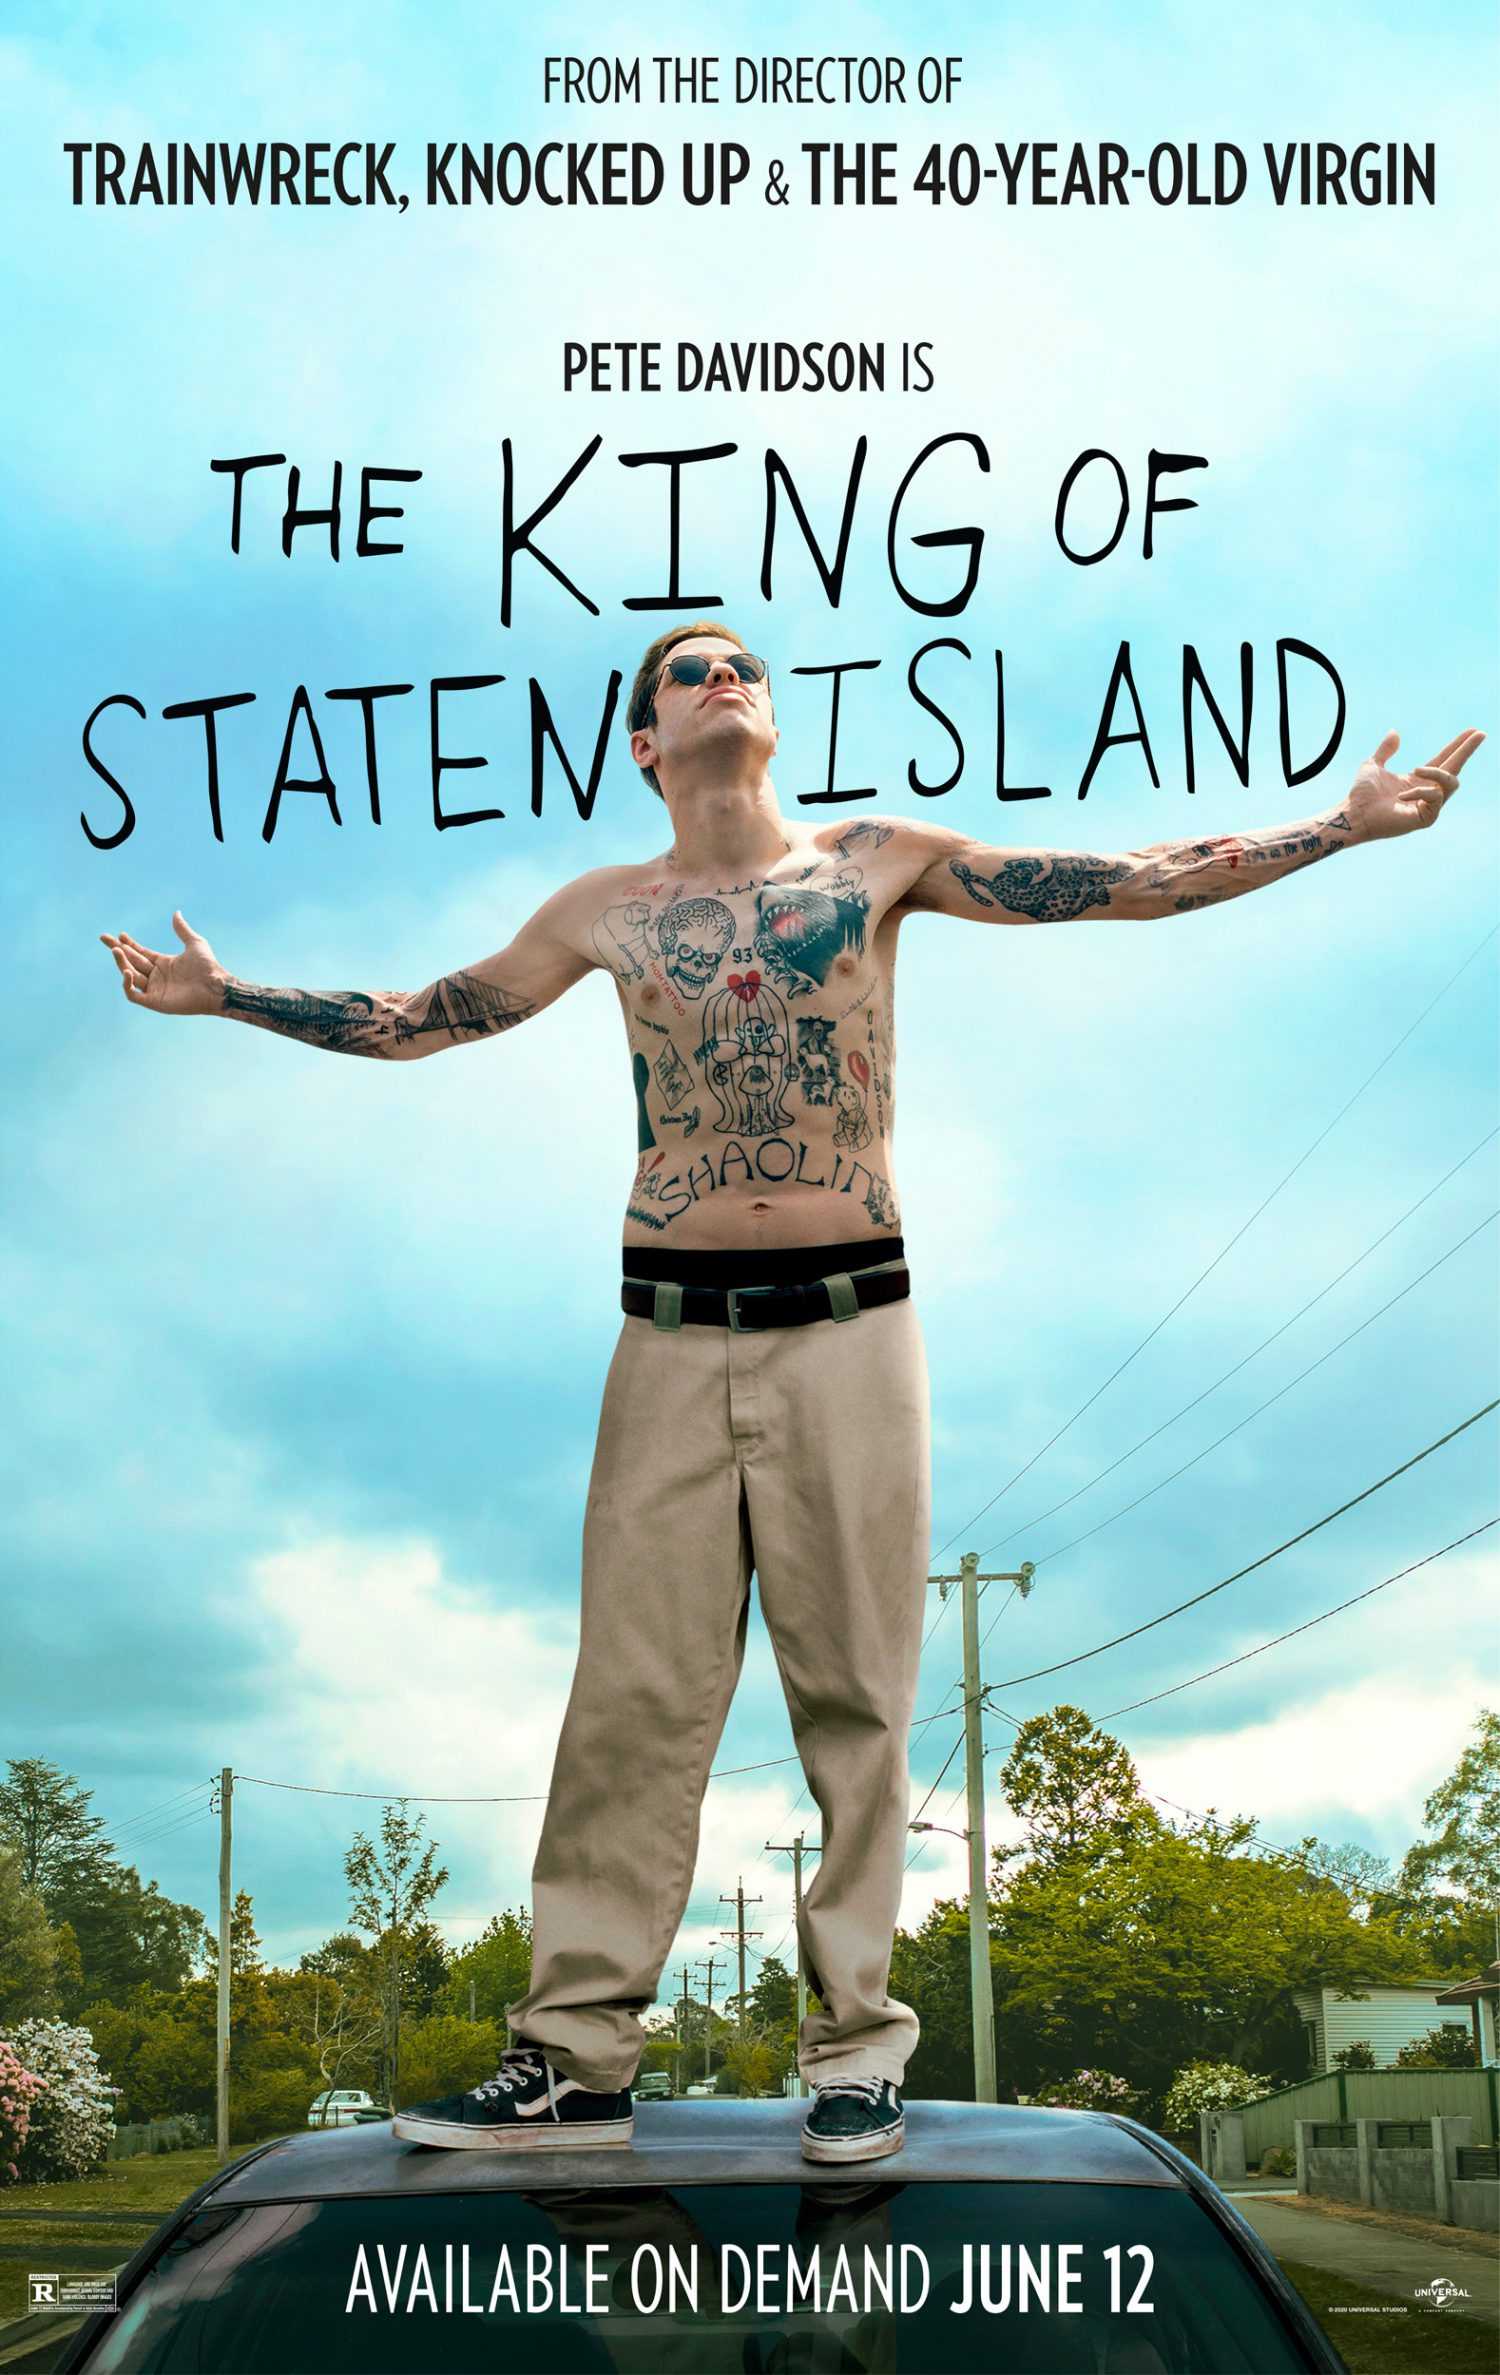 The King of Staten Island is headed to digital.